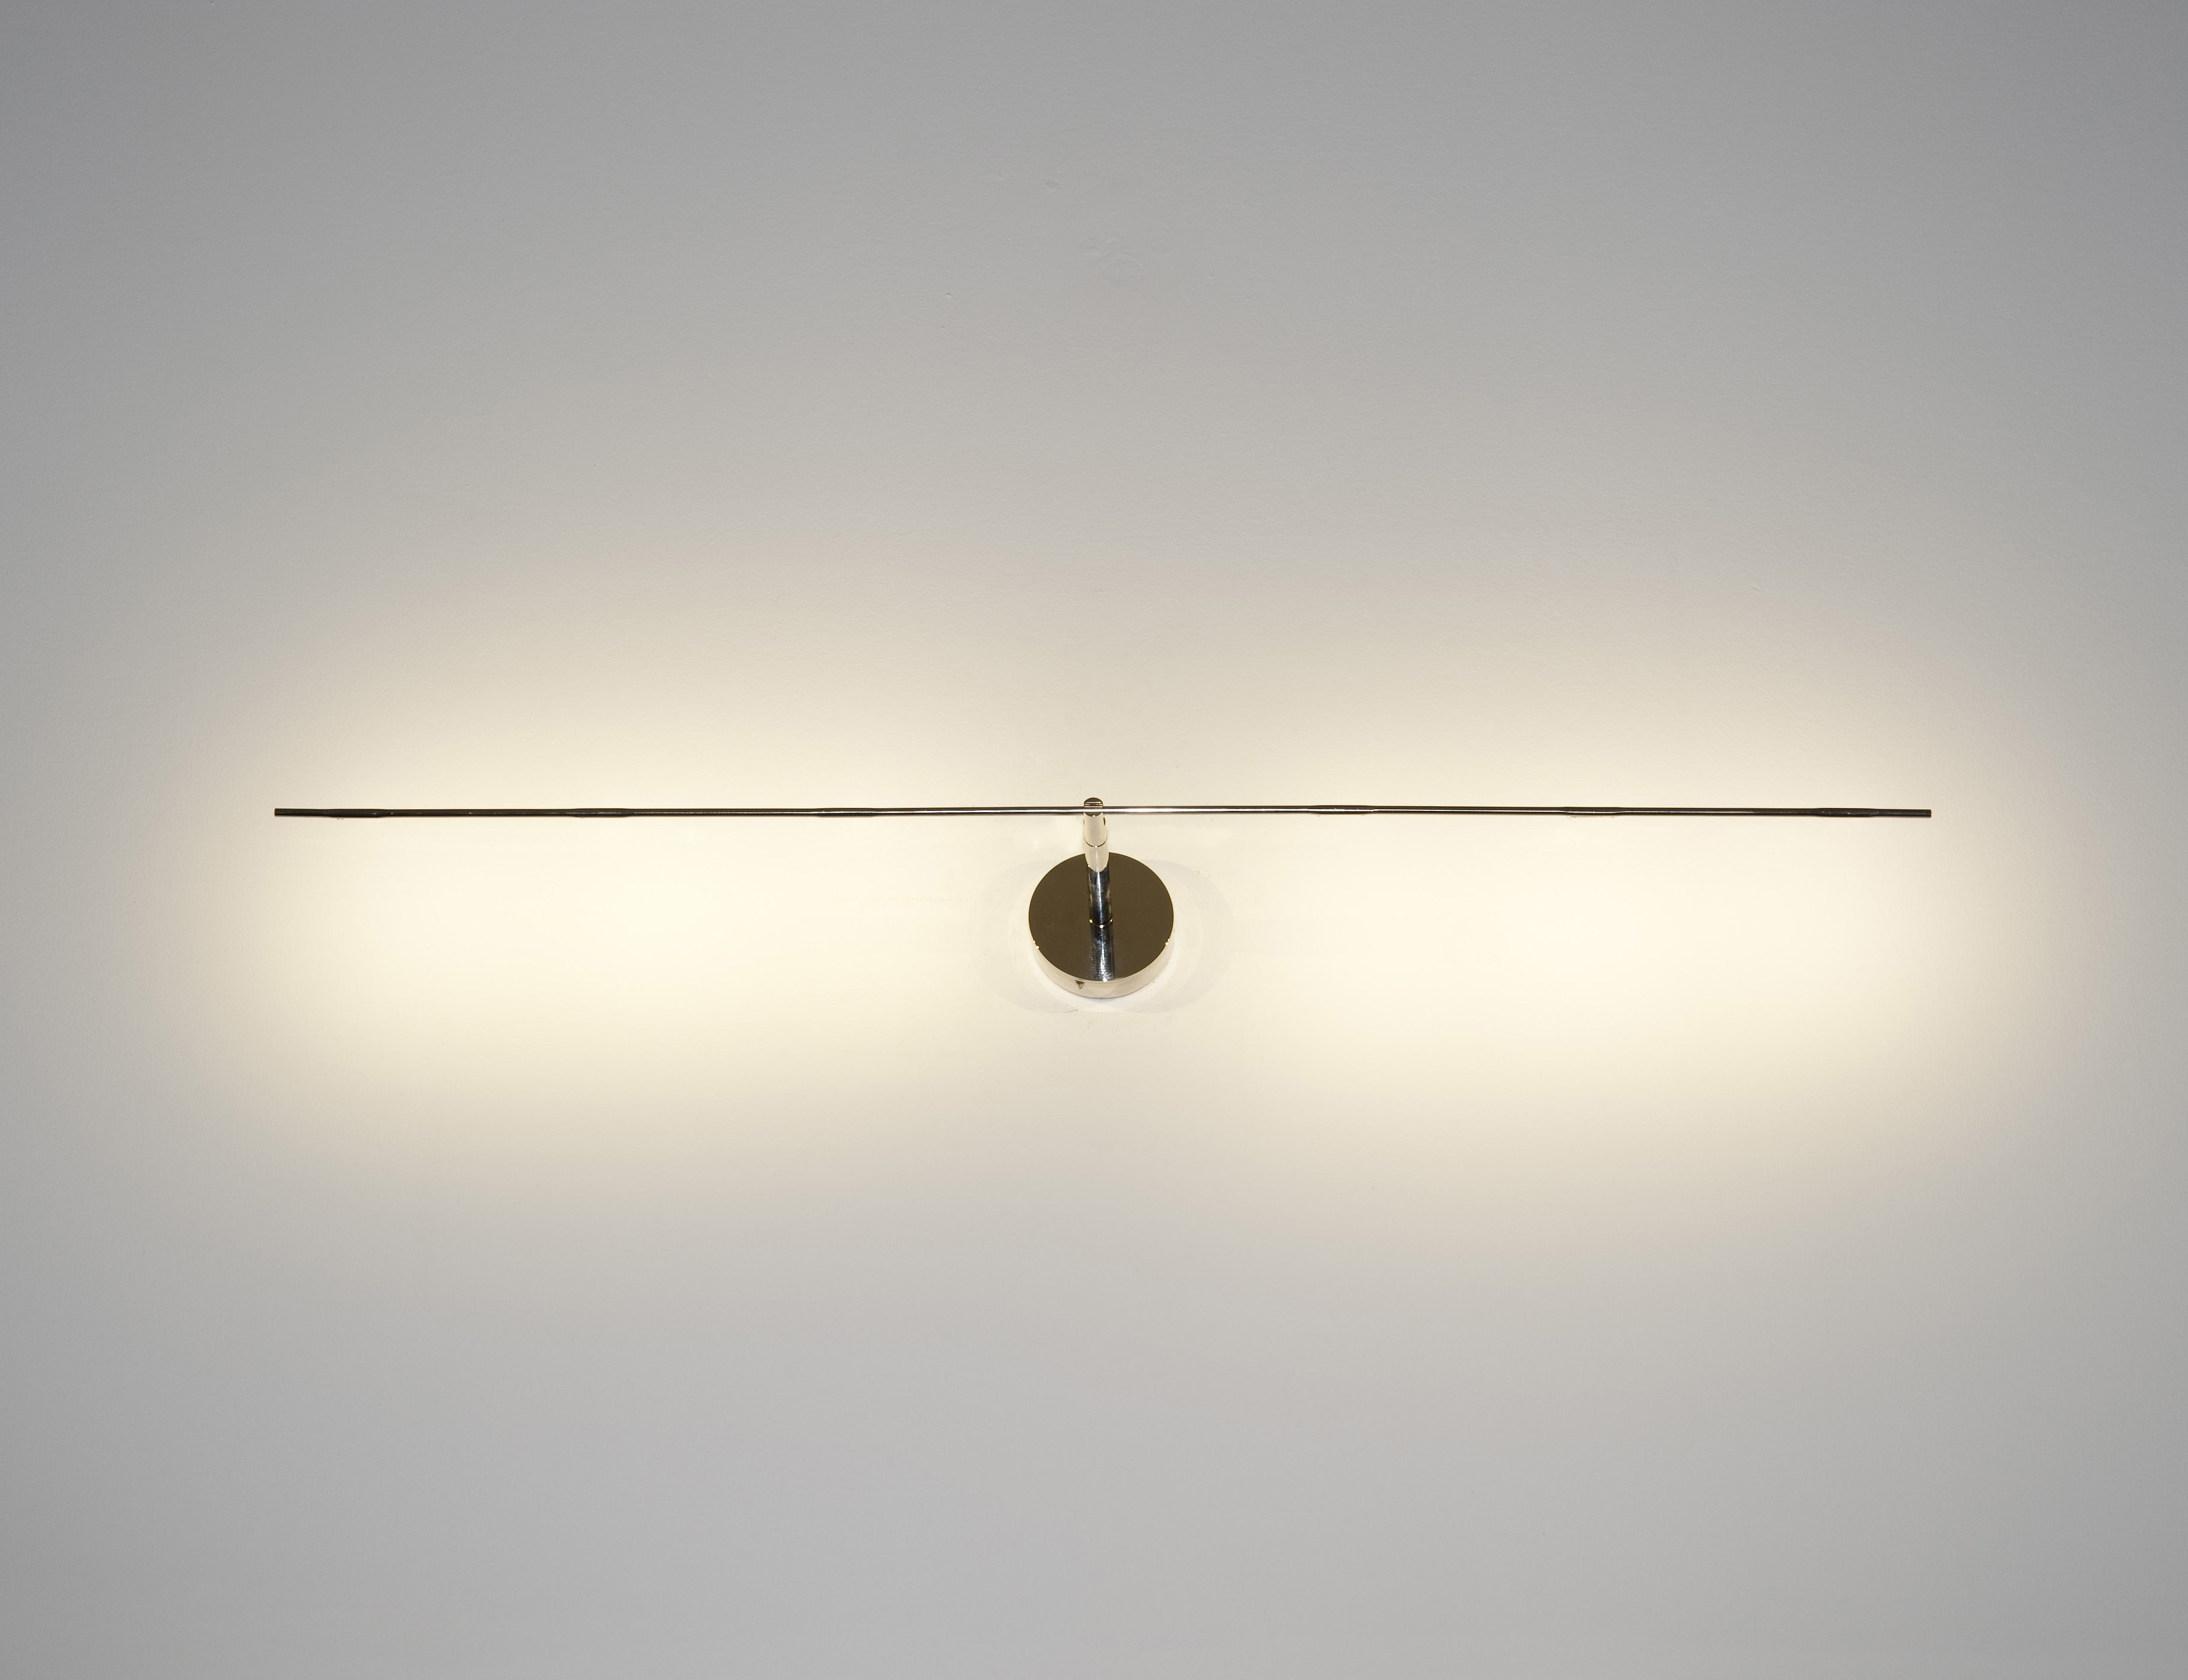 Lights That Stick On The Wall : Light stick Wall light - LED - L 61 cm Aluminium - L 61 cm by Catellani & Smith